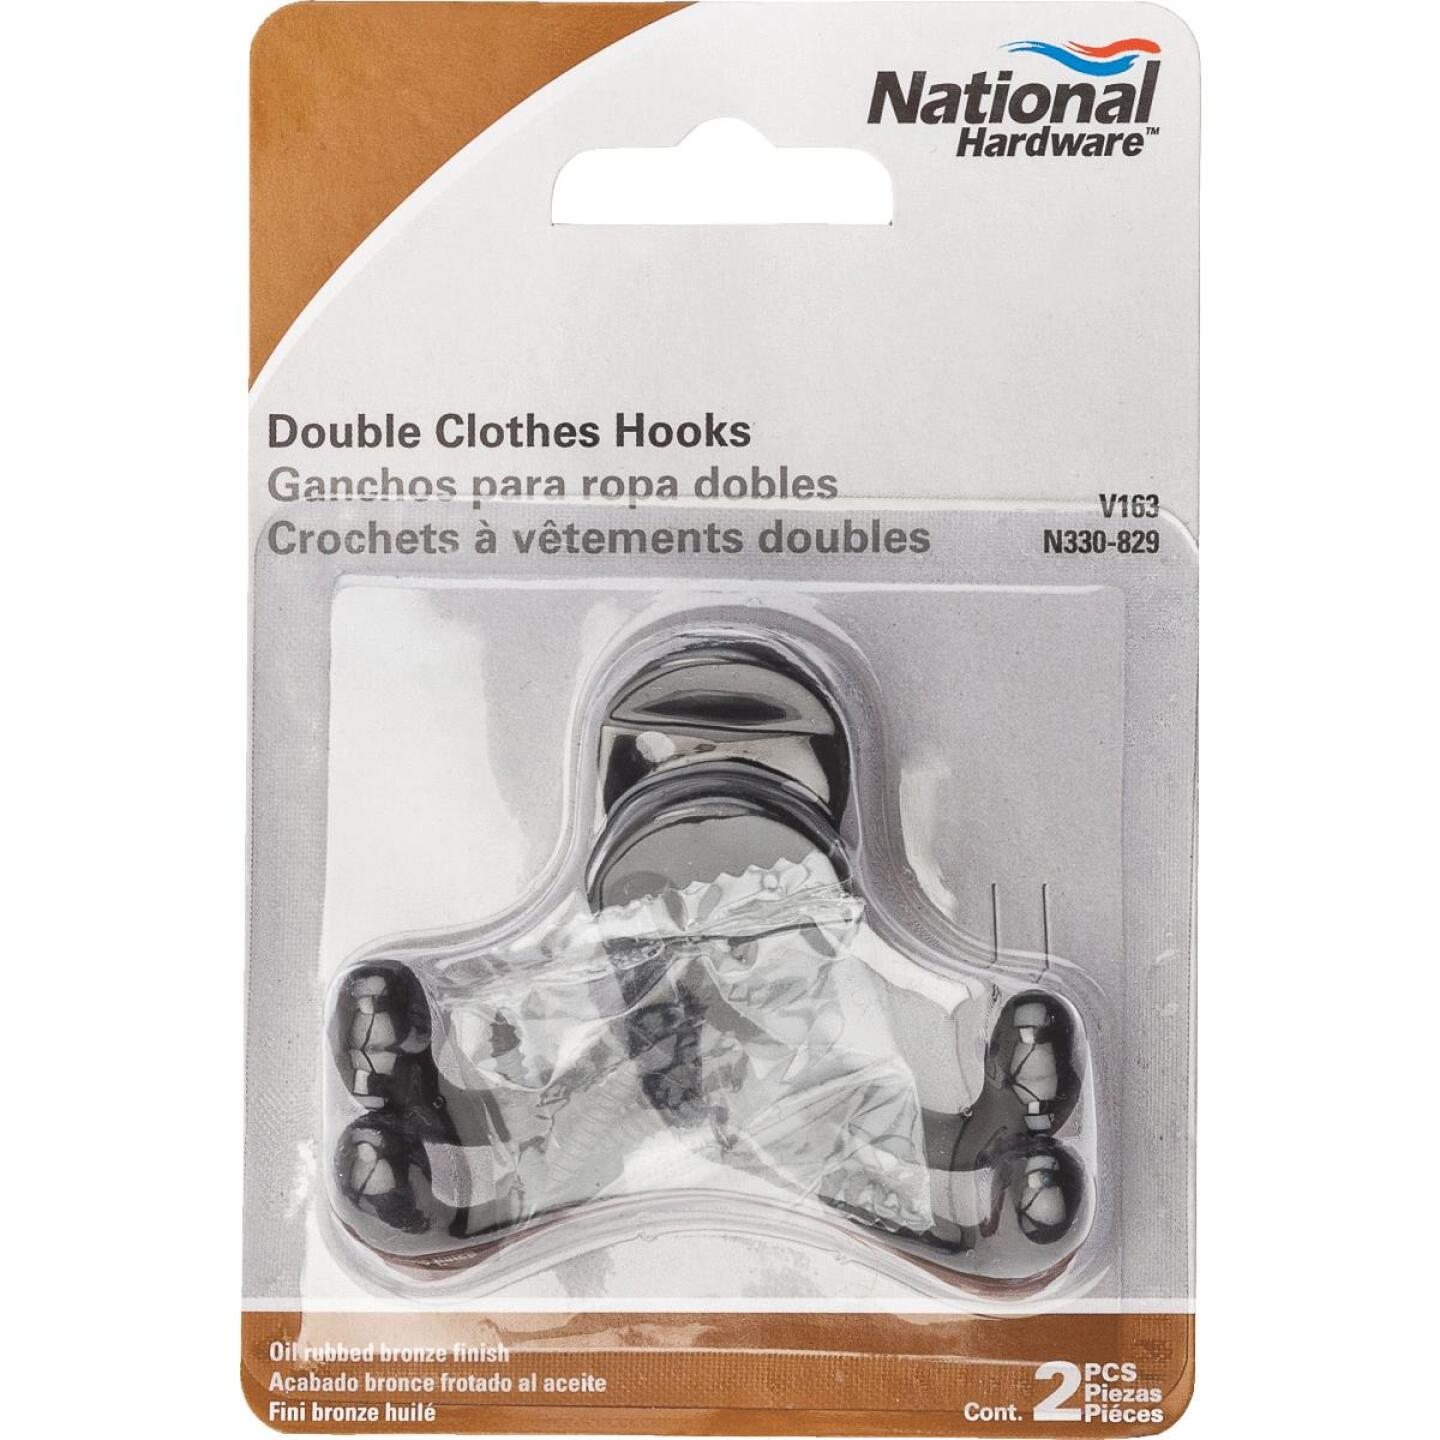 National Oil Rub Bronze Double Cloth Wardrobe Hook, 2 per Card Image 2